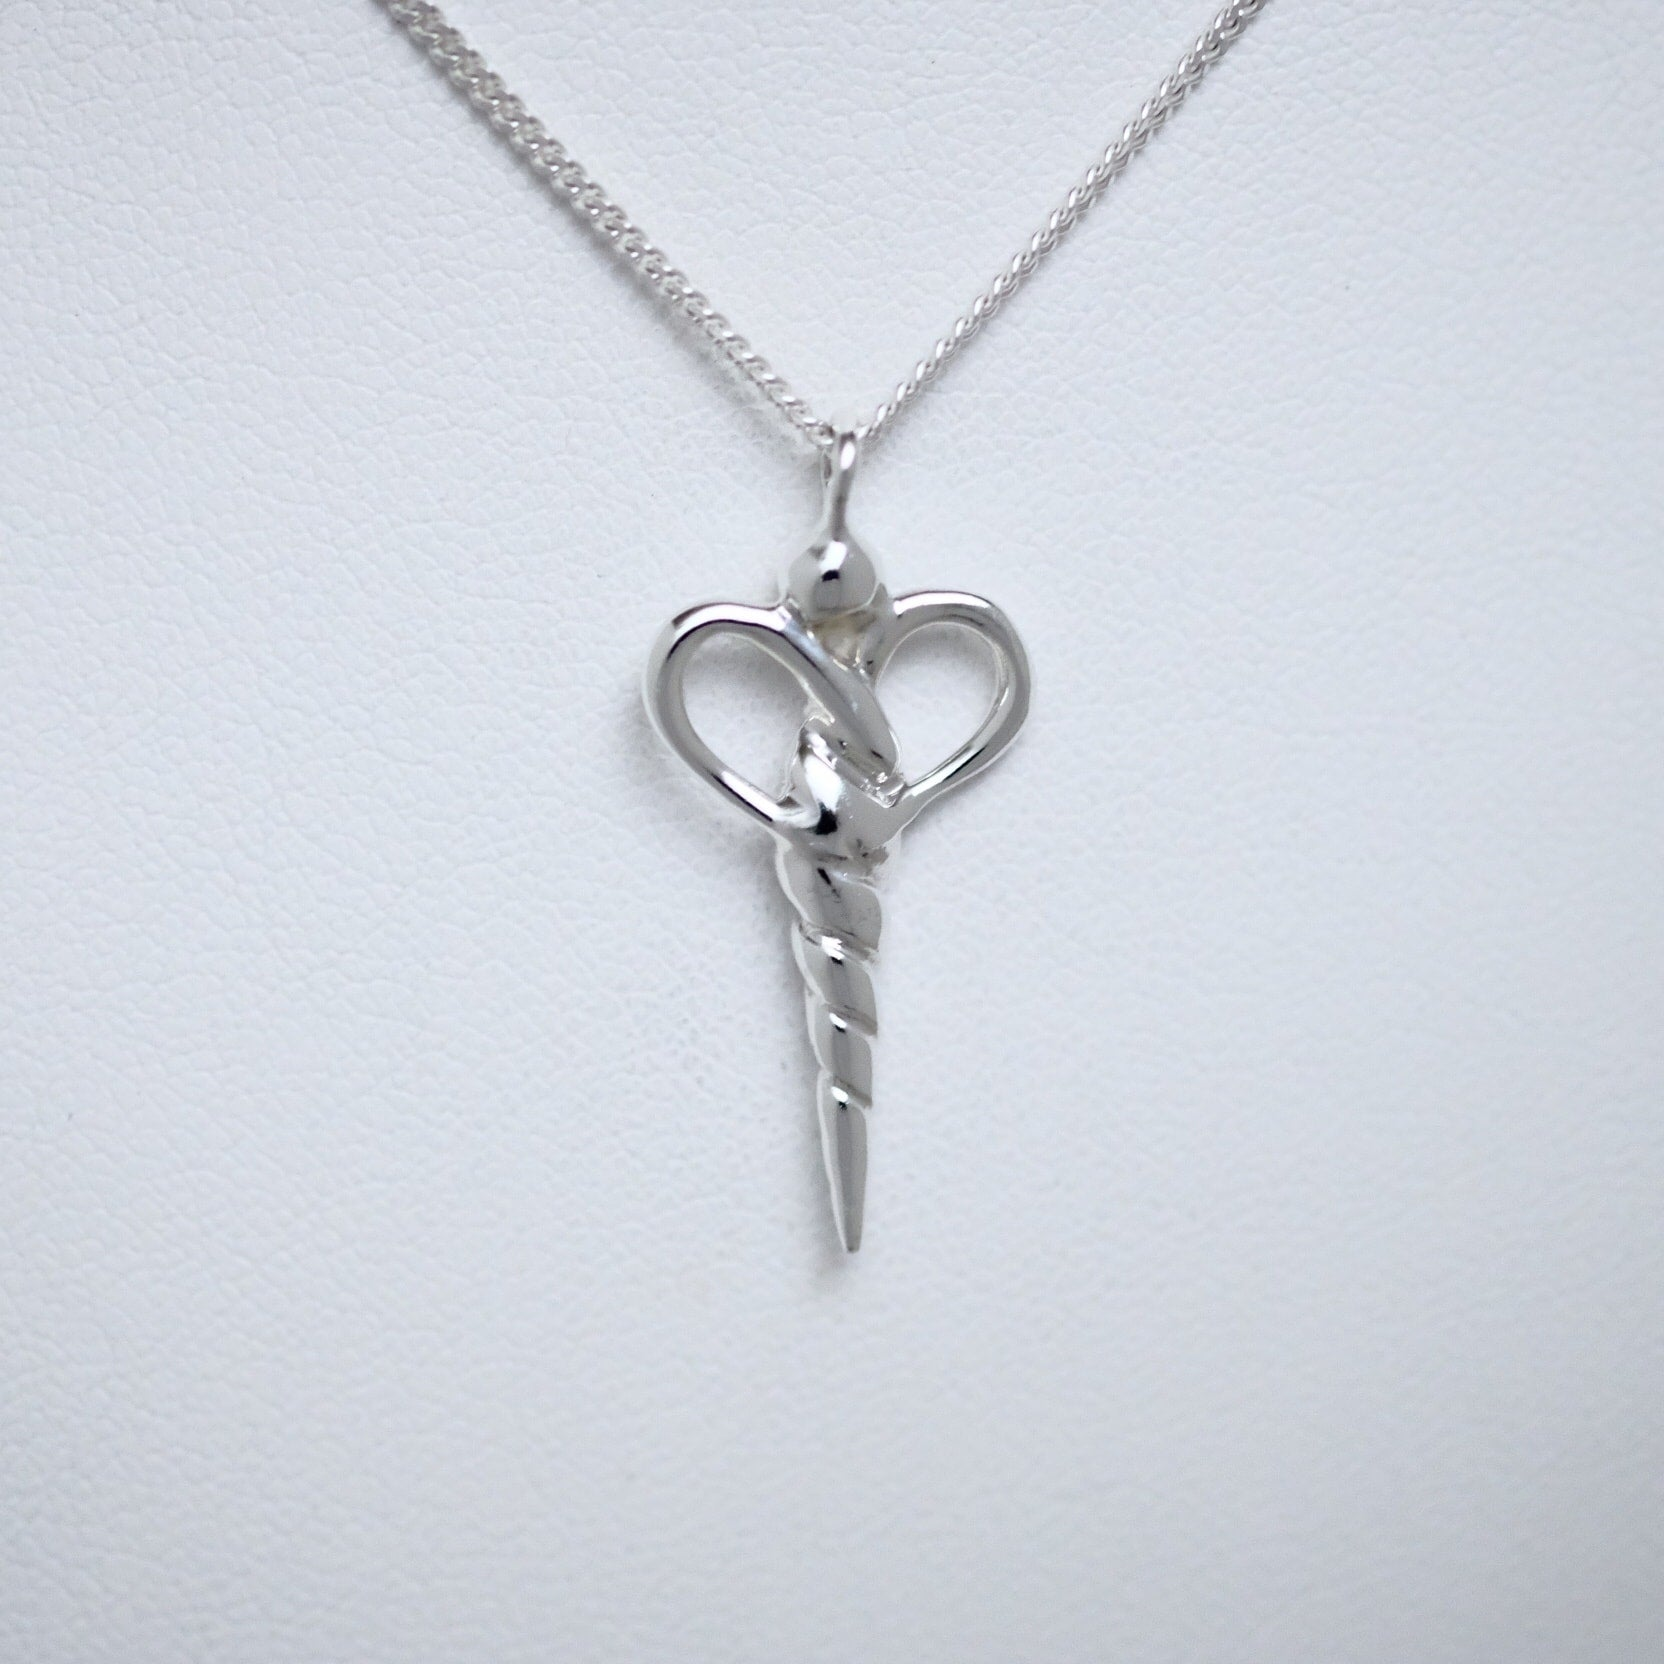 Nurse pendant Line of Love Jewellery by Joseph Chiang